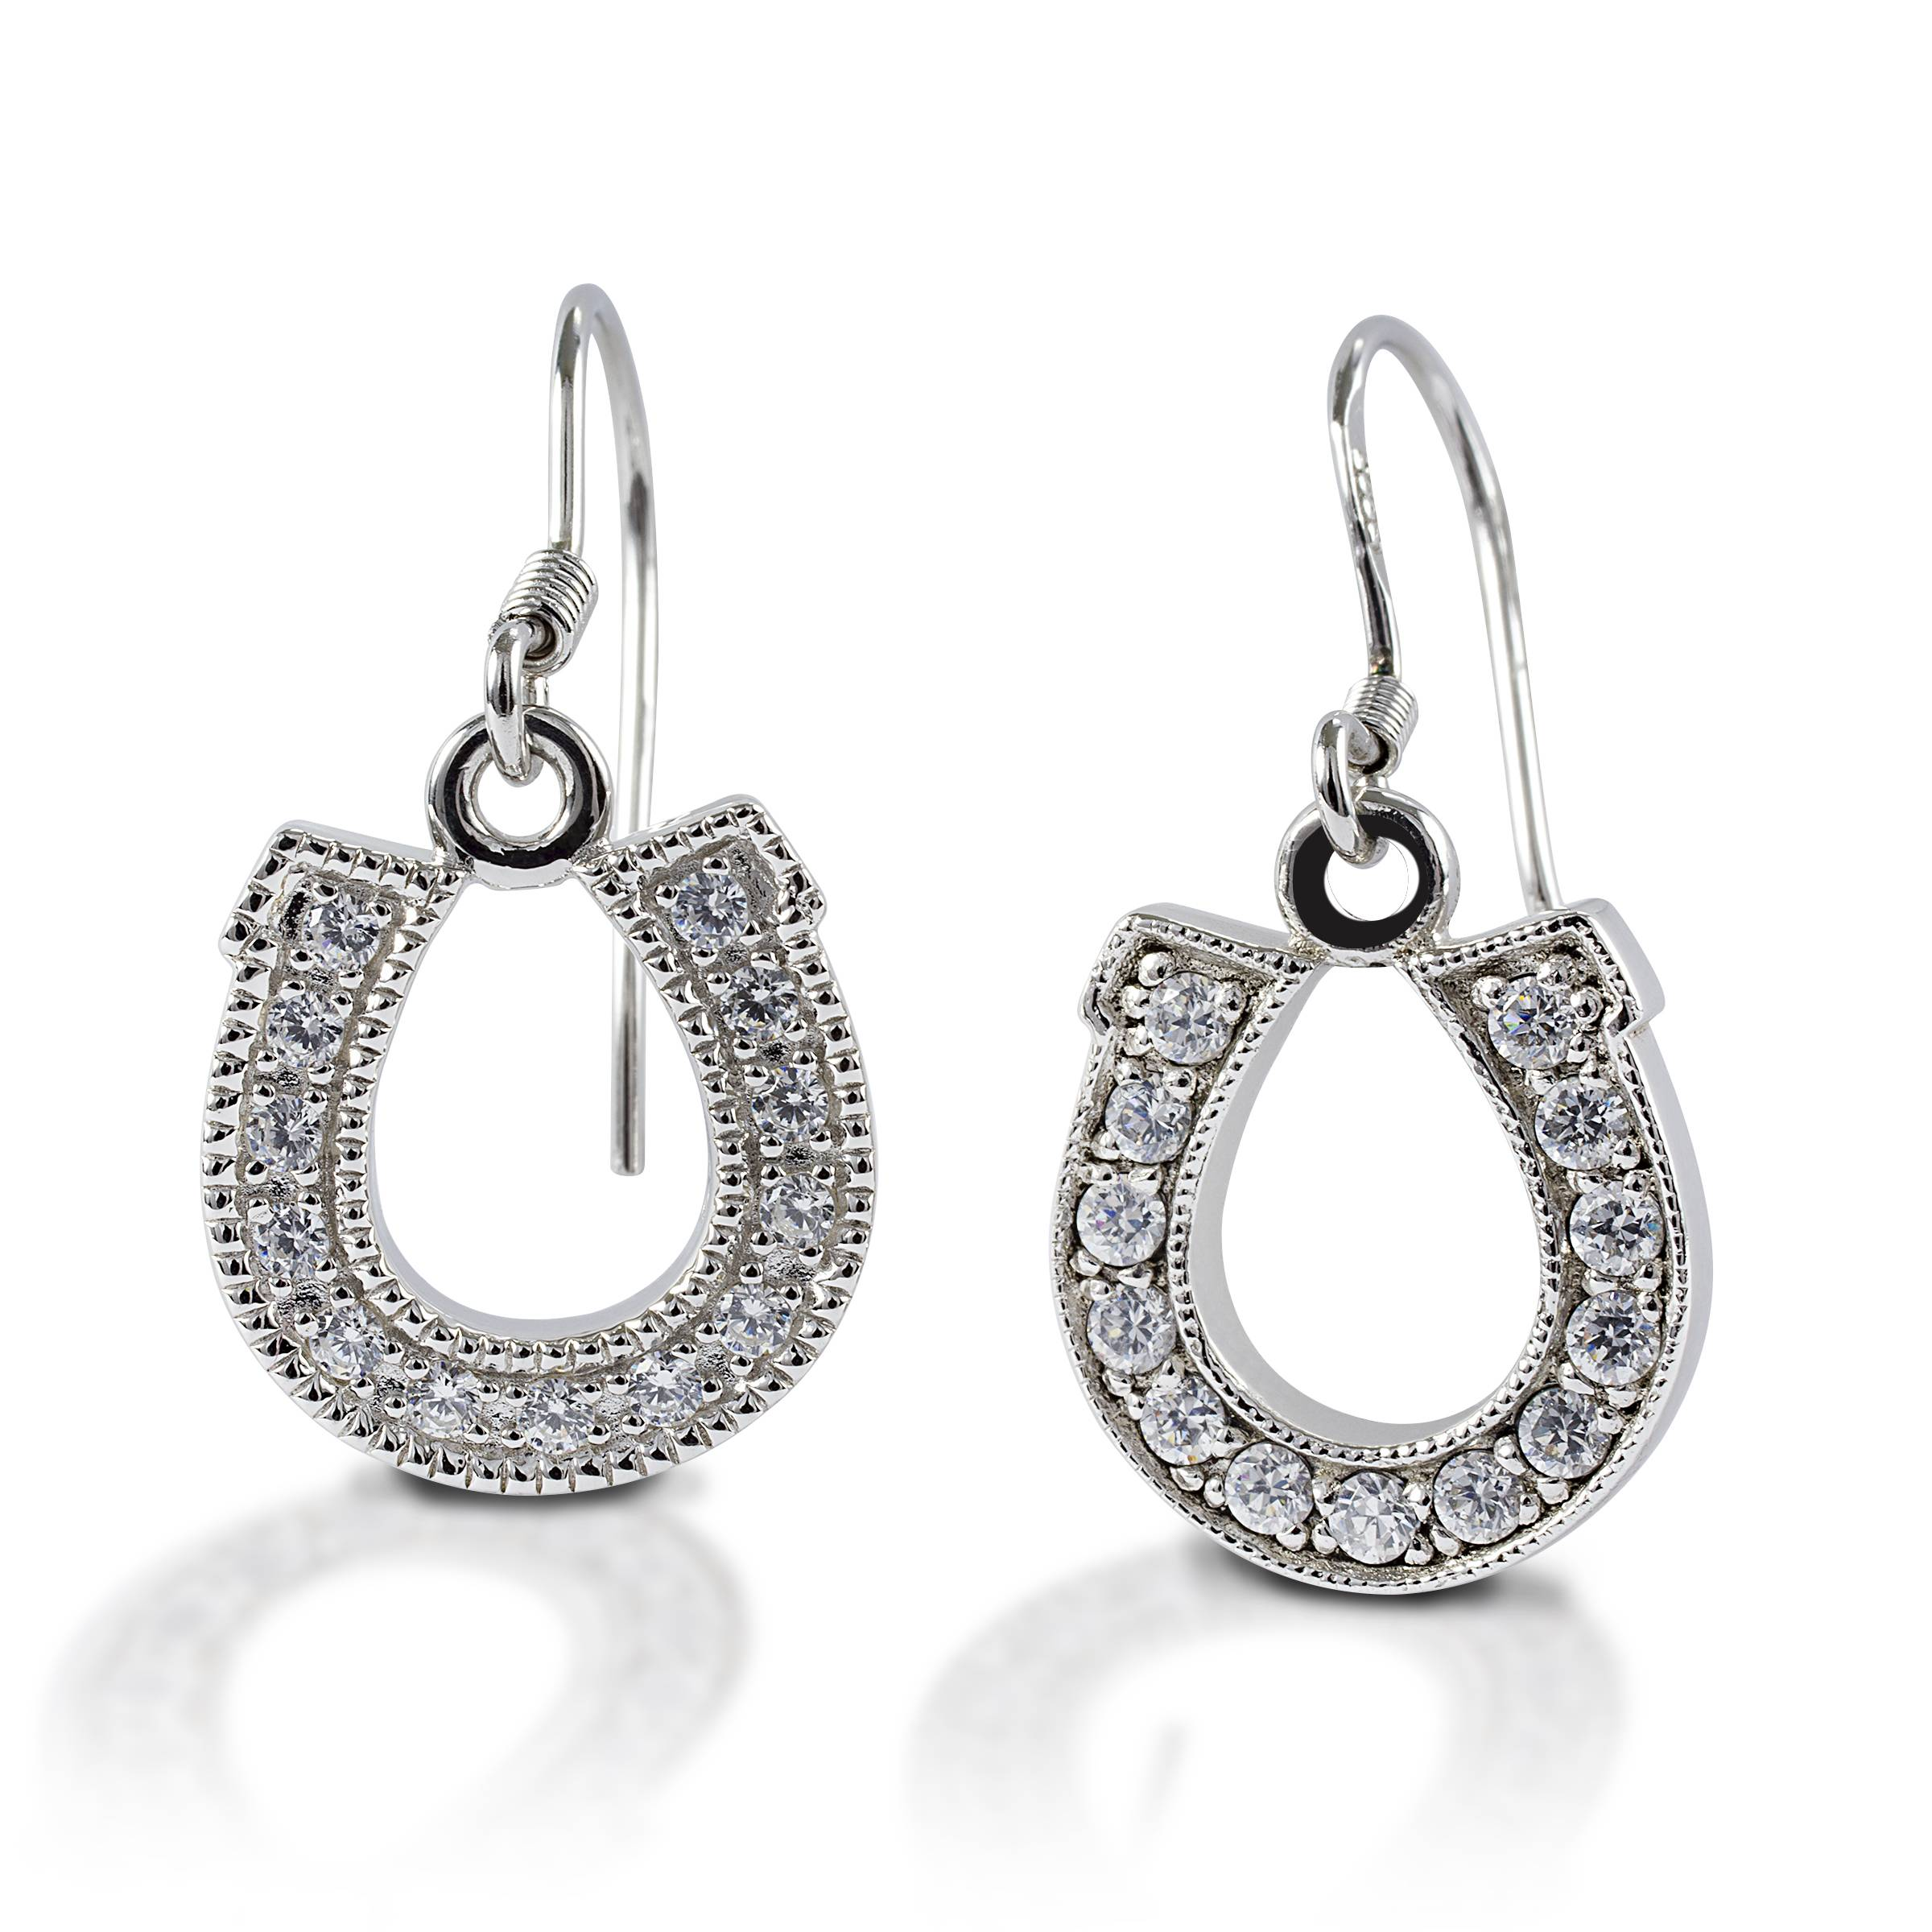 Kelly Herd Dangle Horseshoe Earrings - Sterling Silver